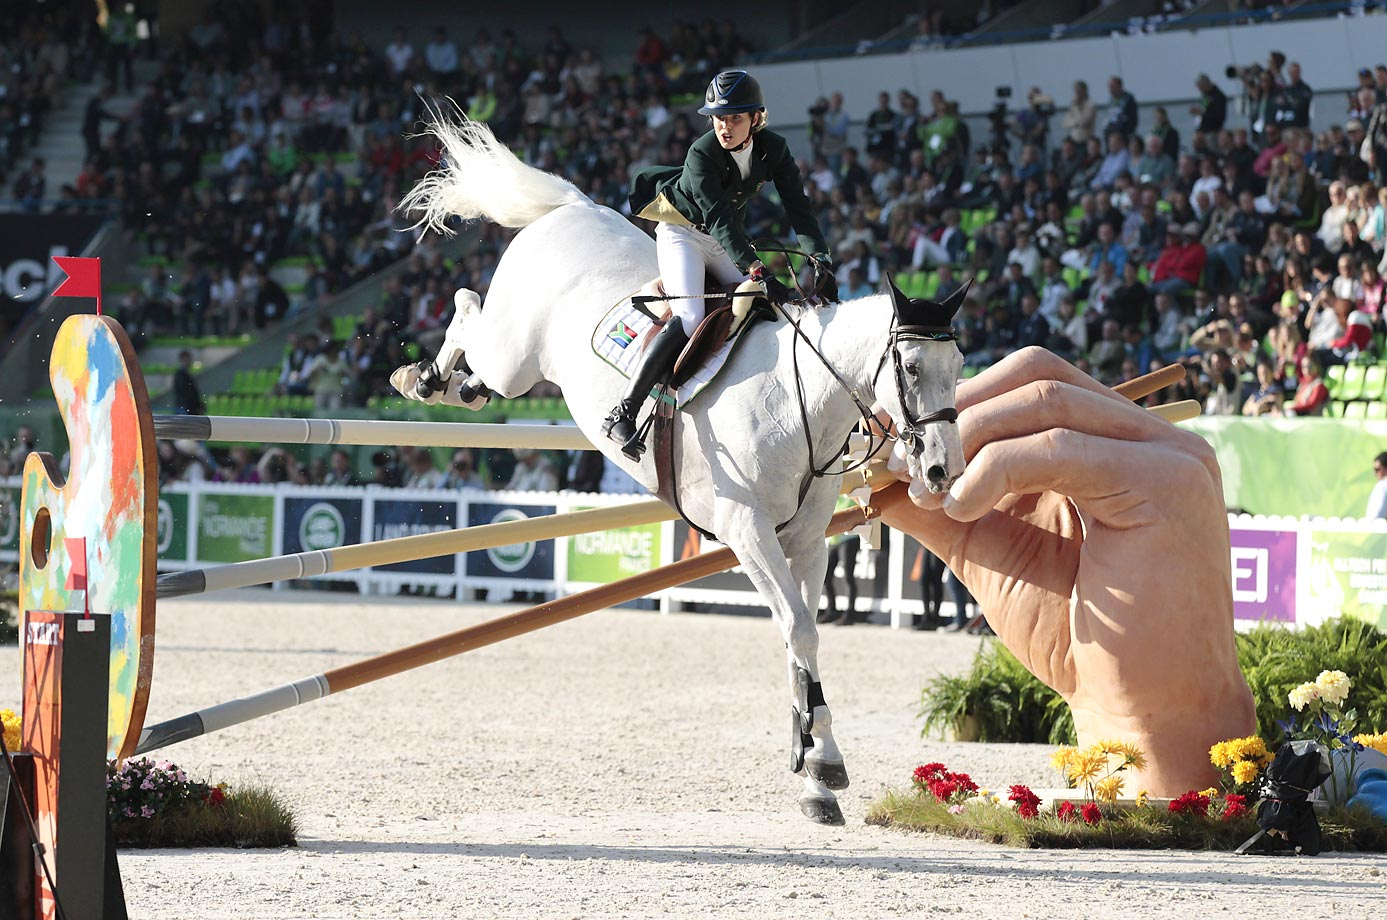 Cara Bianca Frew of South Africa rides Leopold Pierreville during the Individual Jumping competition of the 2014 FEI World Equestrian Games.